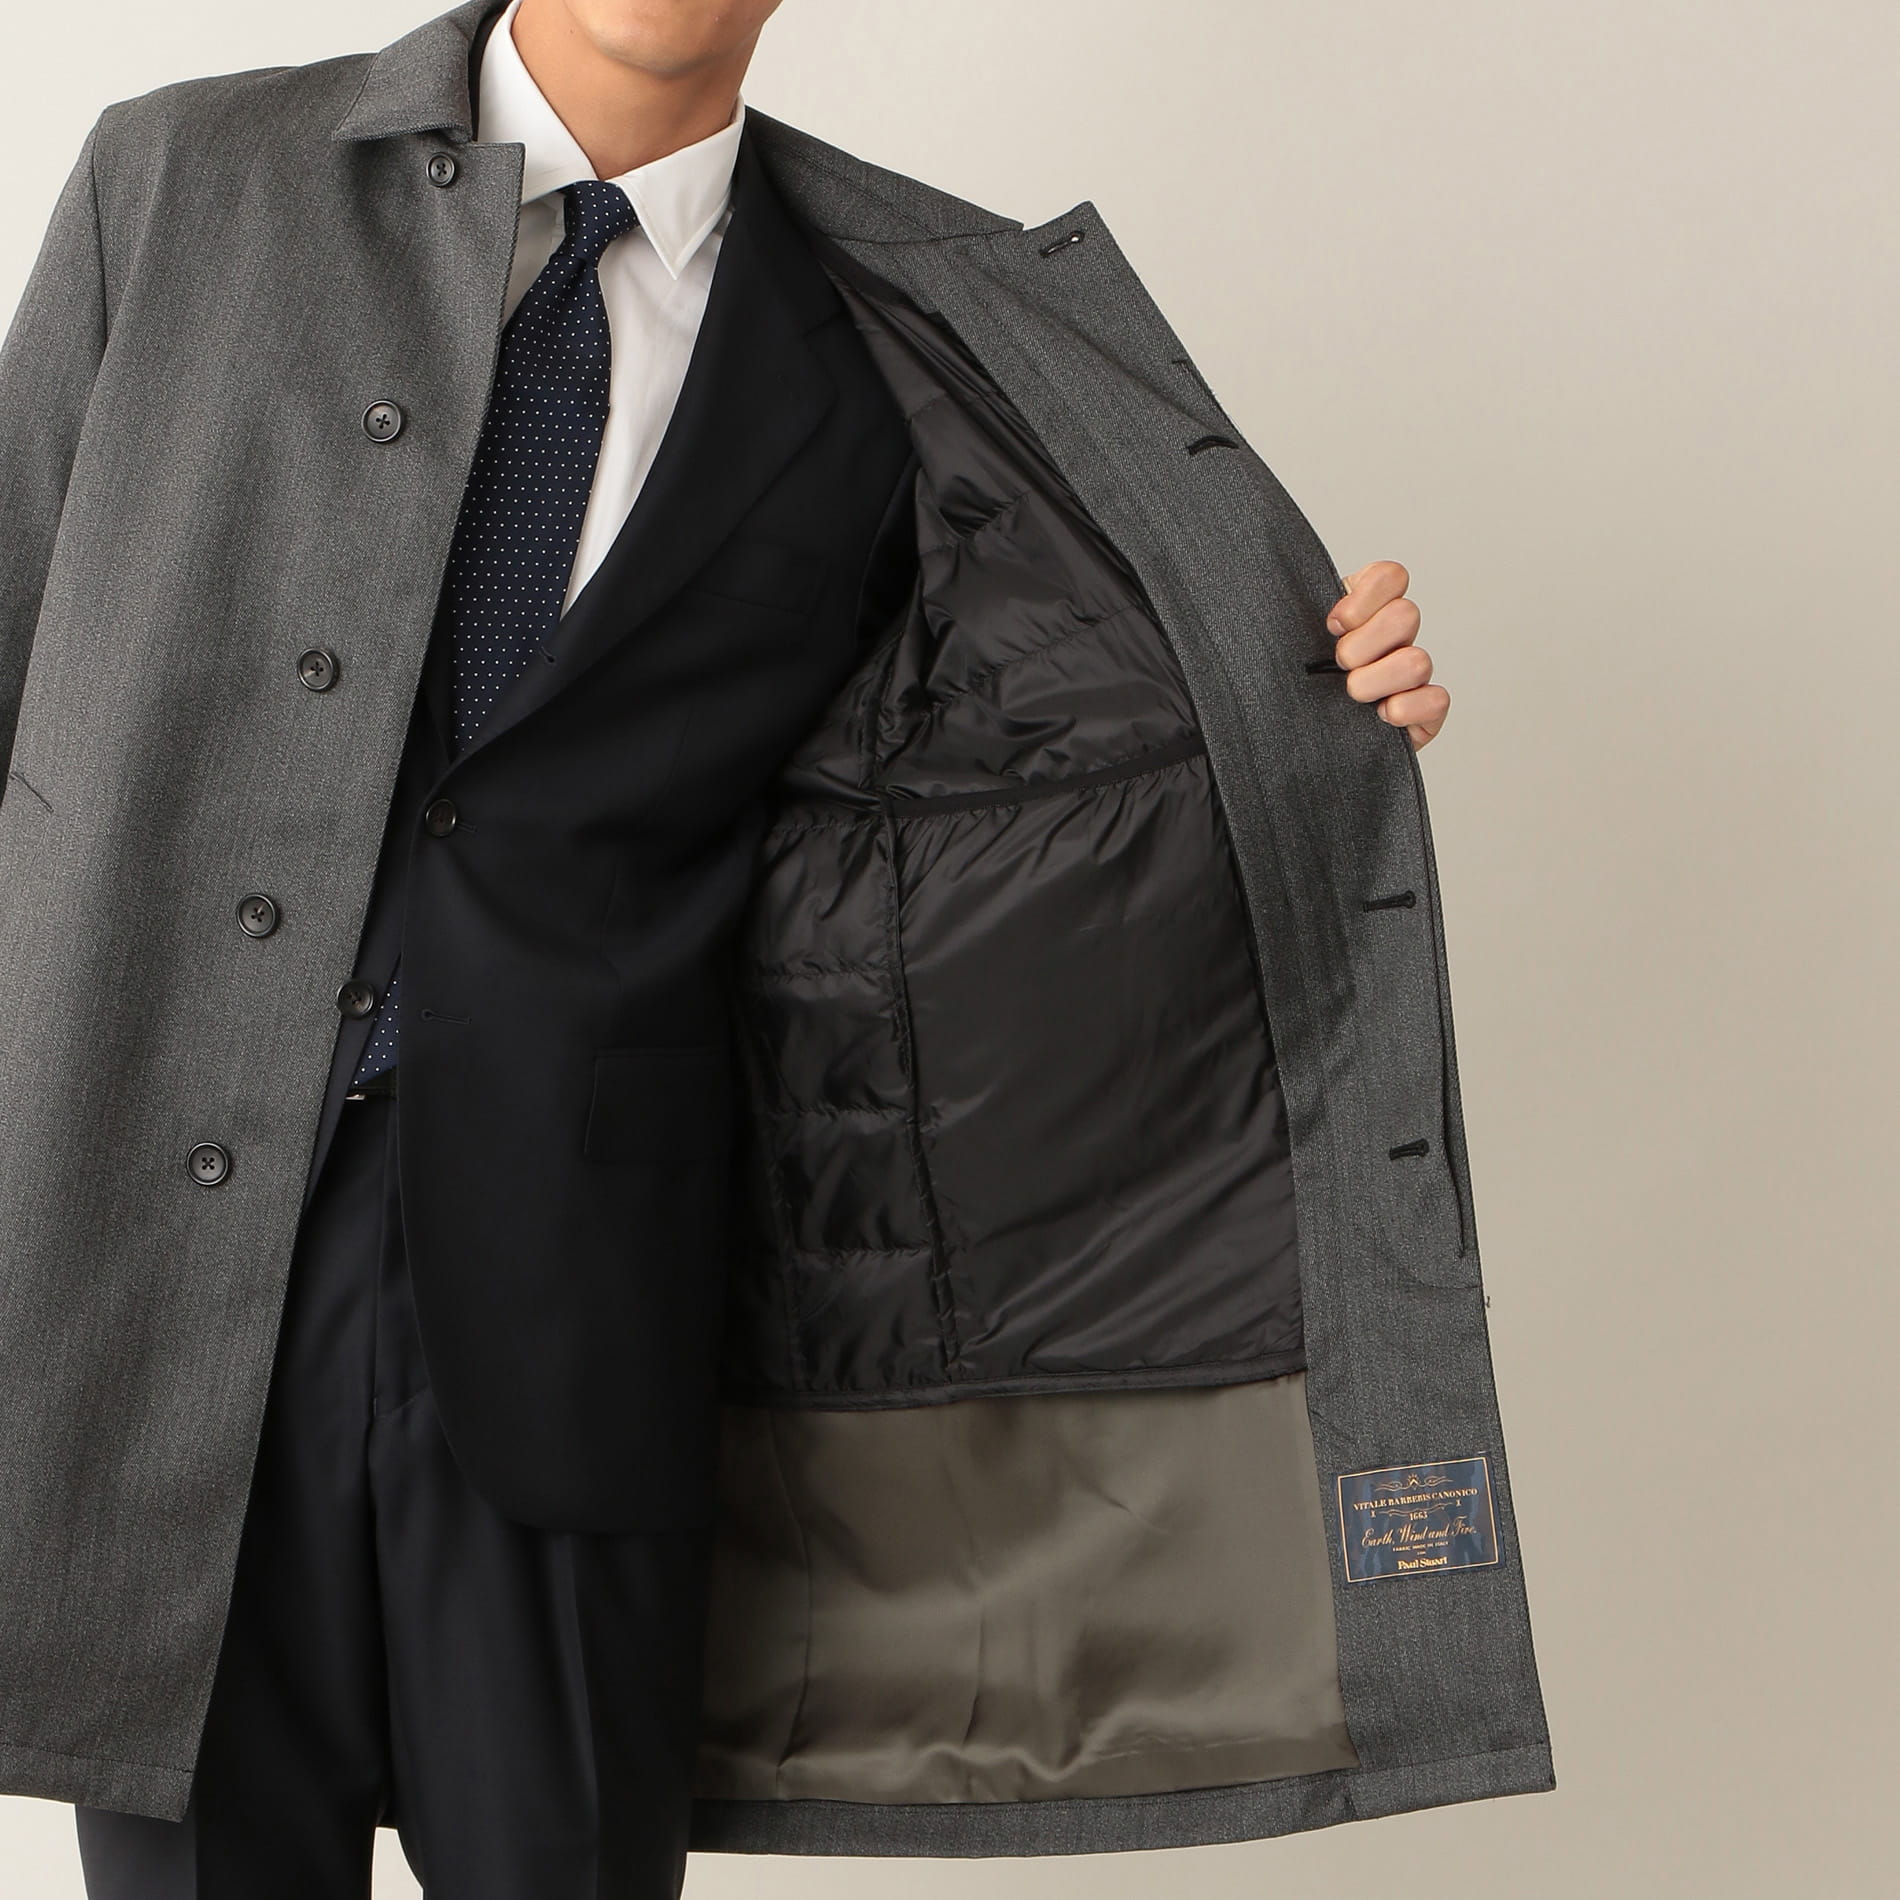 【Vitale Barberis Canonico】「EARTH WIND AND FIRE」ウールボンディングコート